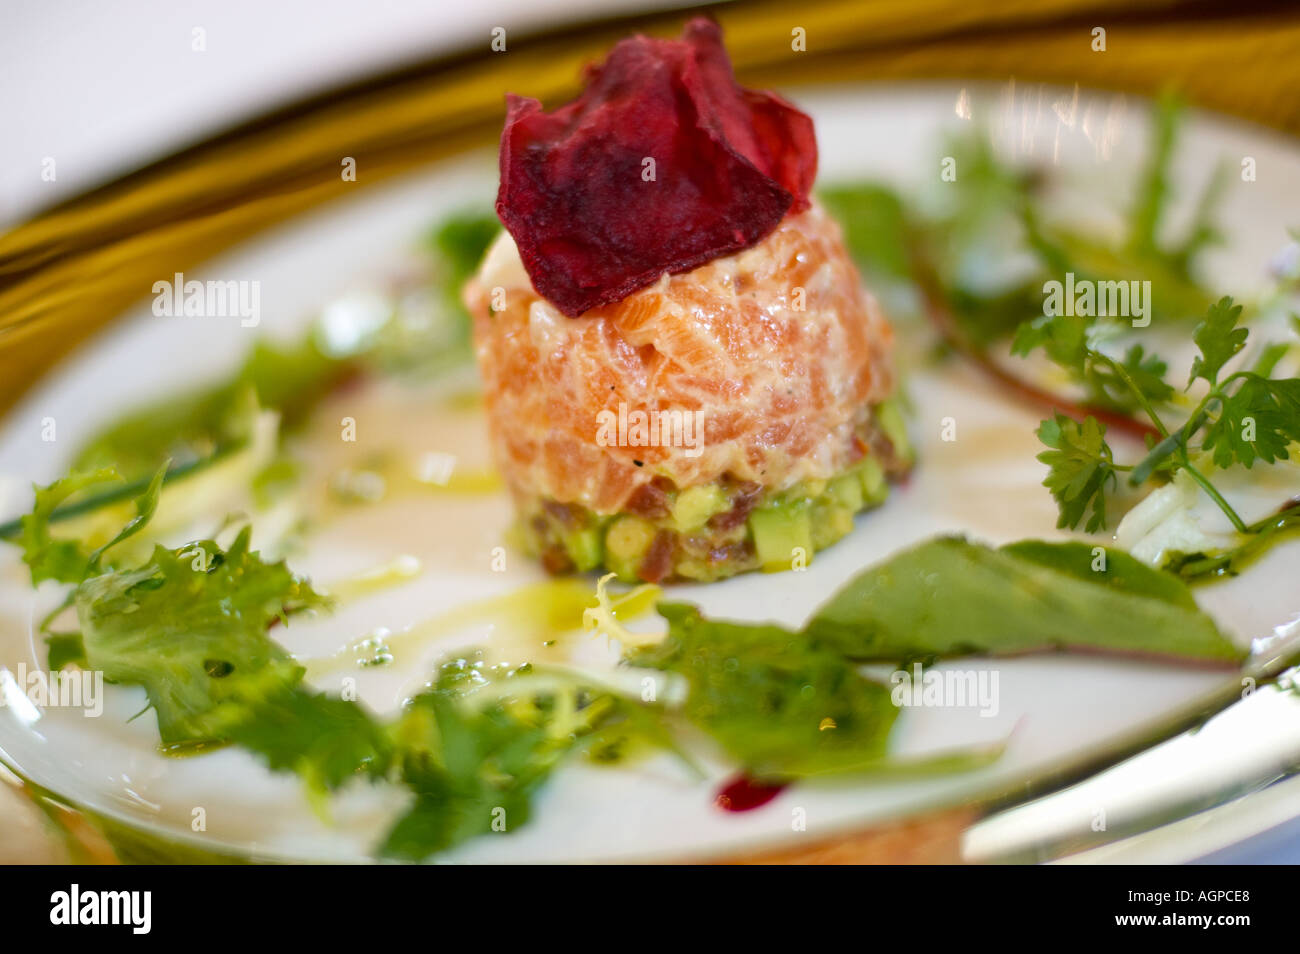 Fine dining - salmon terrine starter on a white plate with gold rim - Stock Image